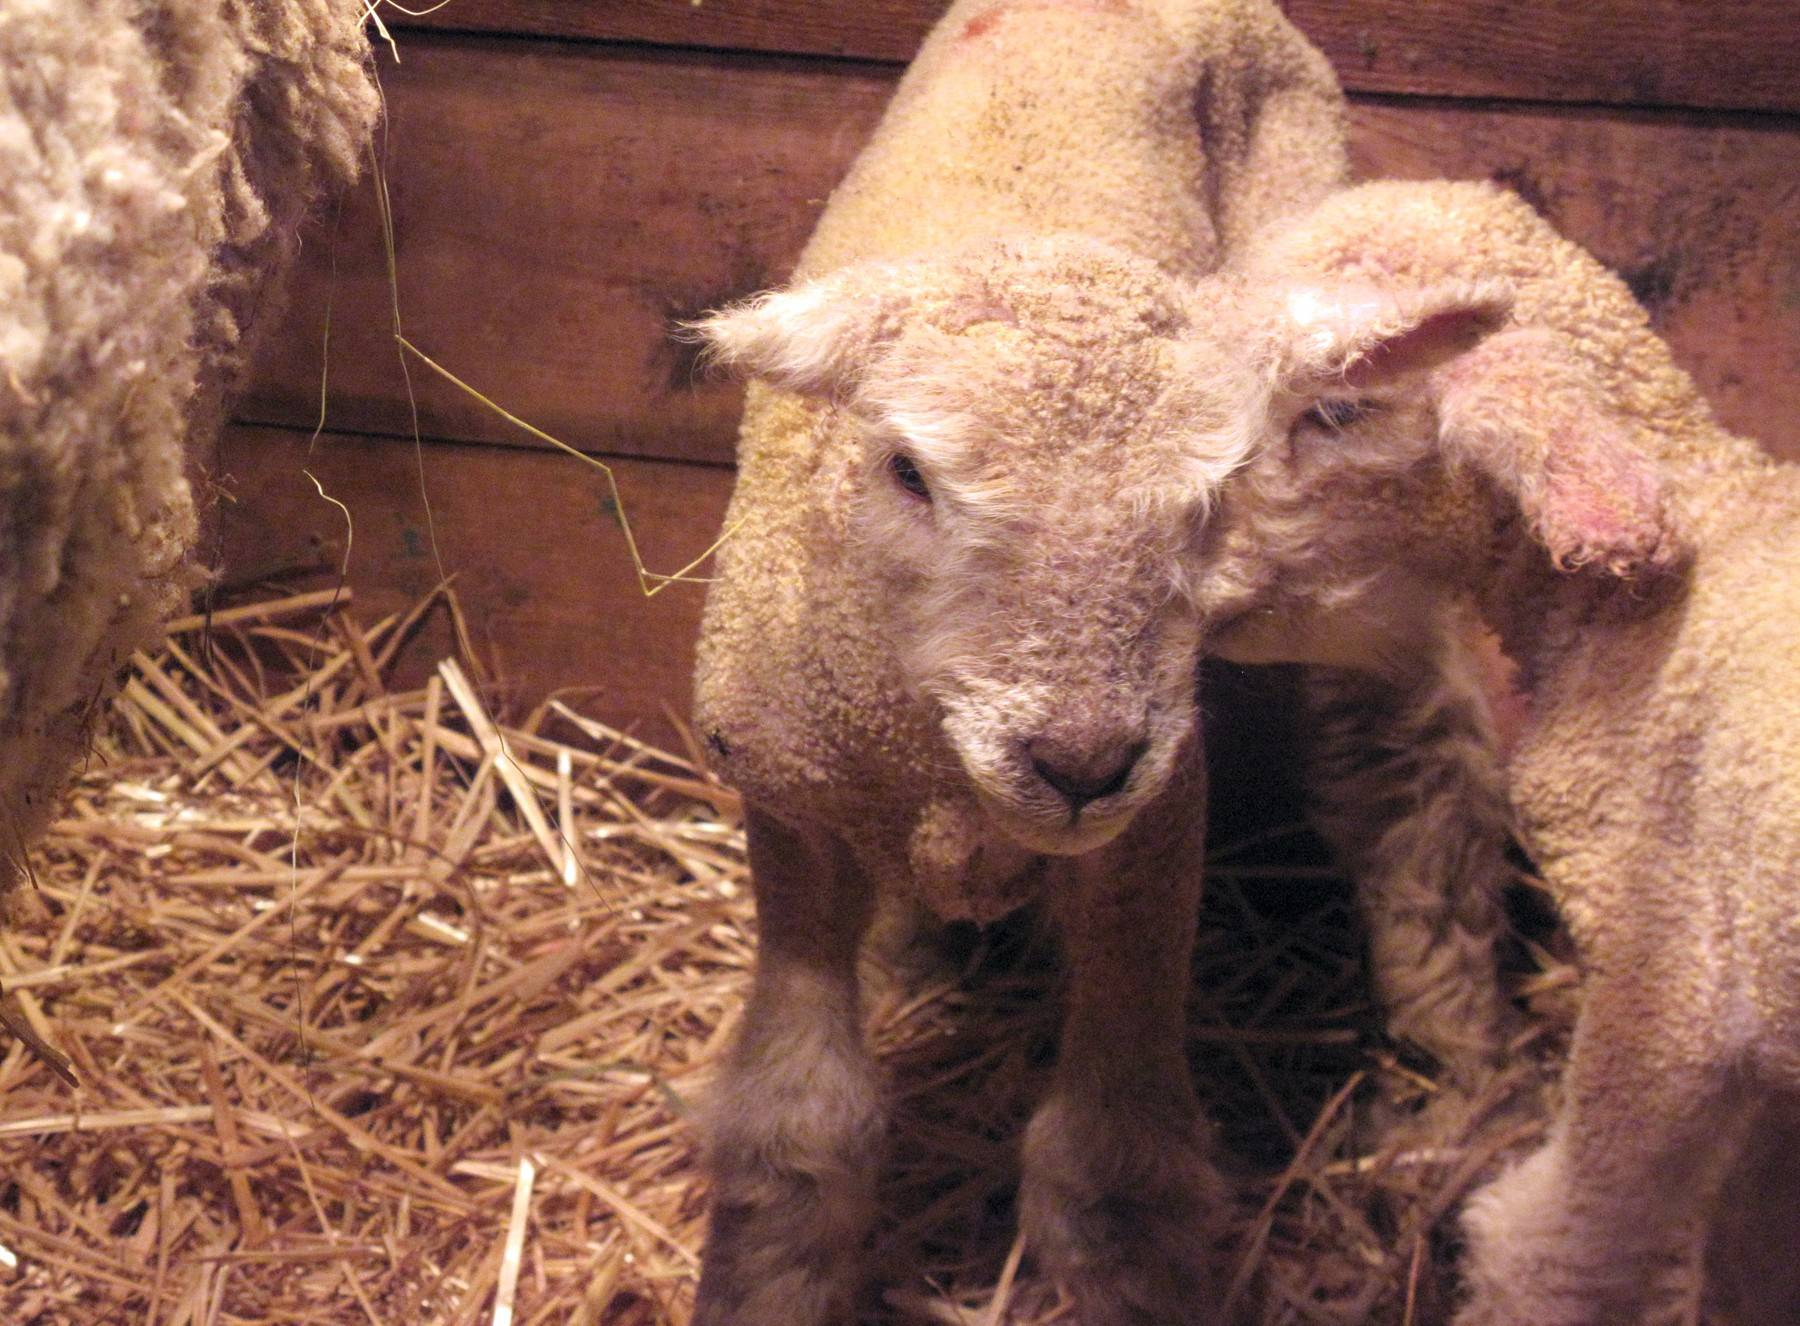 Newborn lambs greet visitors this spring at Kline Creek Farm in West Chicago.